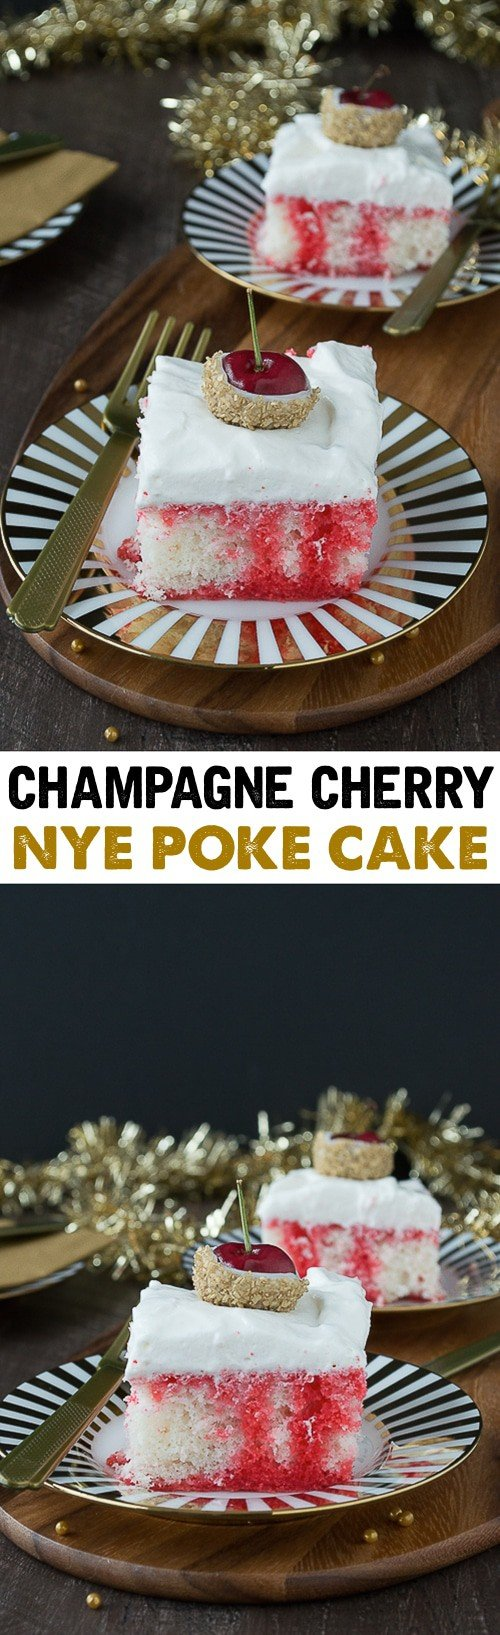 A poke cake infused with champagne and cherry, all topped with white chocolate cherries dipped in gold glitter! This would be perfect for New Year's Eve!